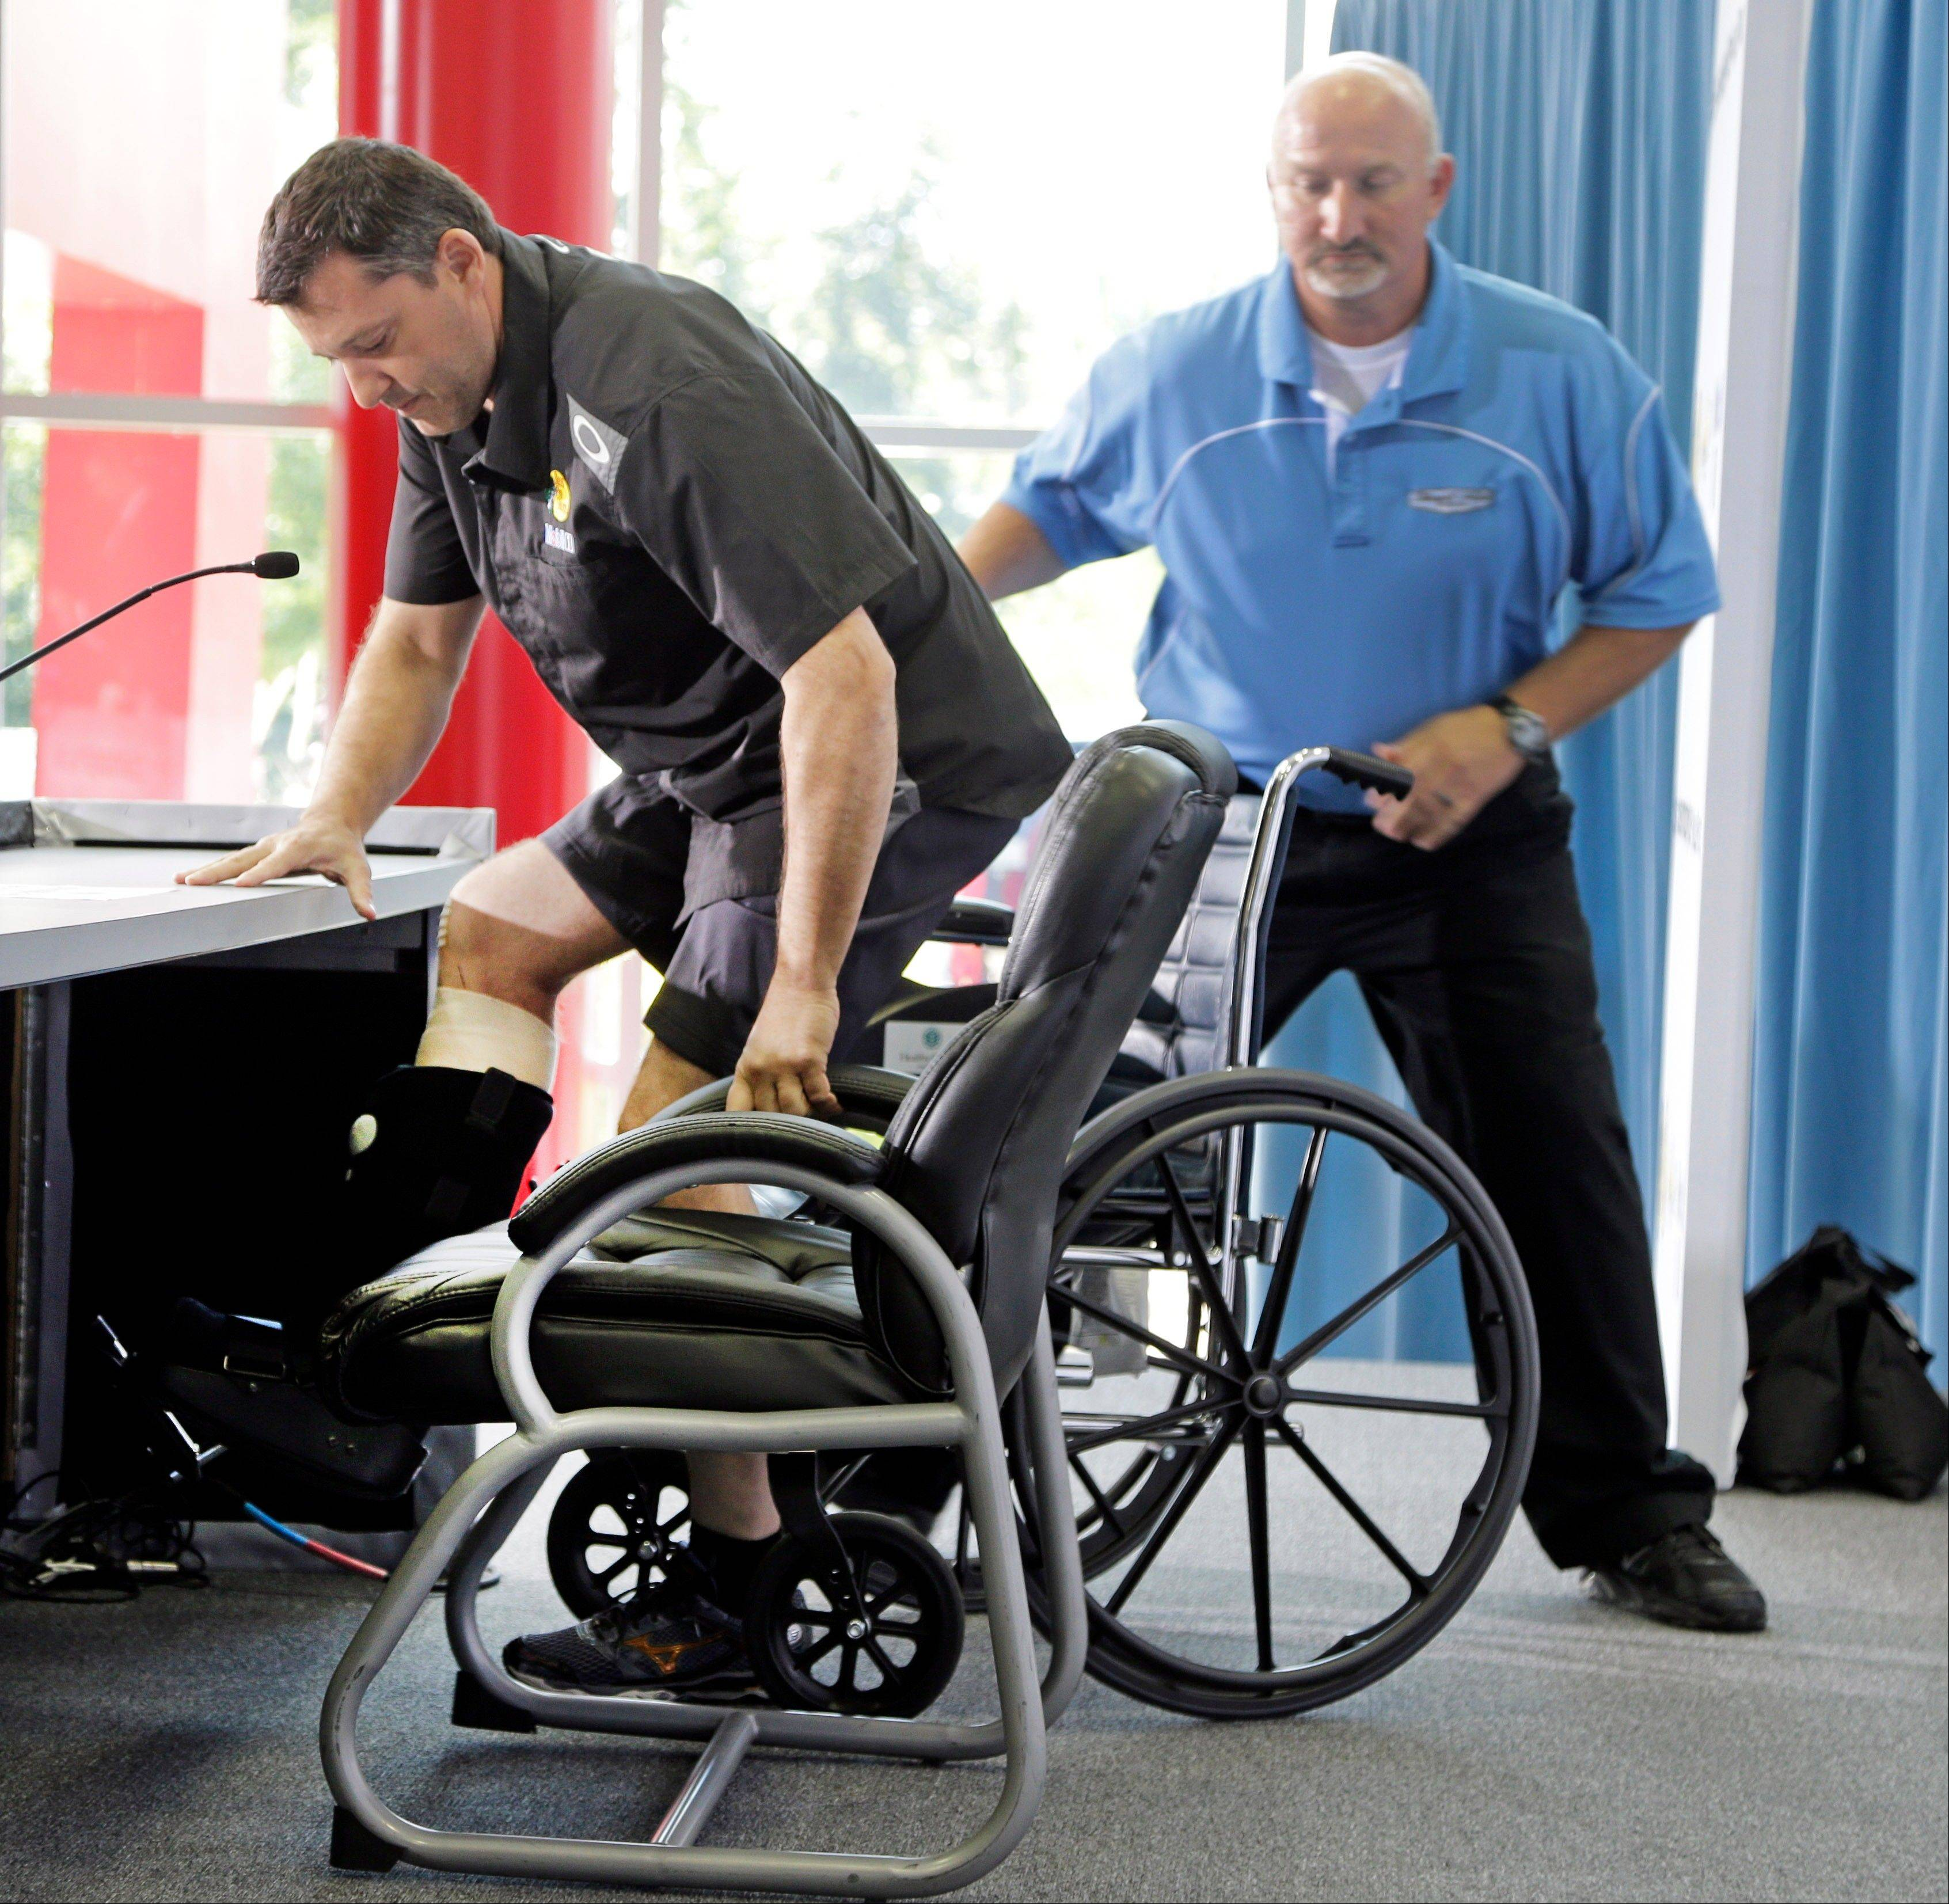 NASCAR driver and team co-owner Tony Stewart, left, arrives in a wheelchair assisted by Josh Katz, right, before a news conference at Stewart-Haas Racing's headquarters in Kannapolis, N.C., Tuesday, Sept. 3, 2013.